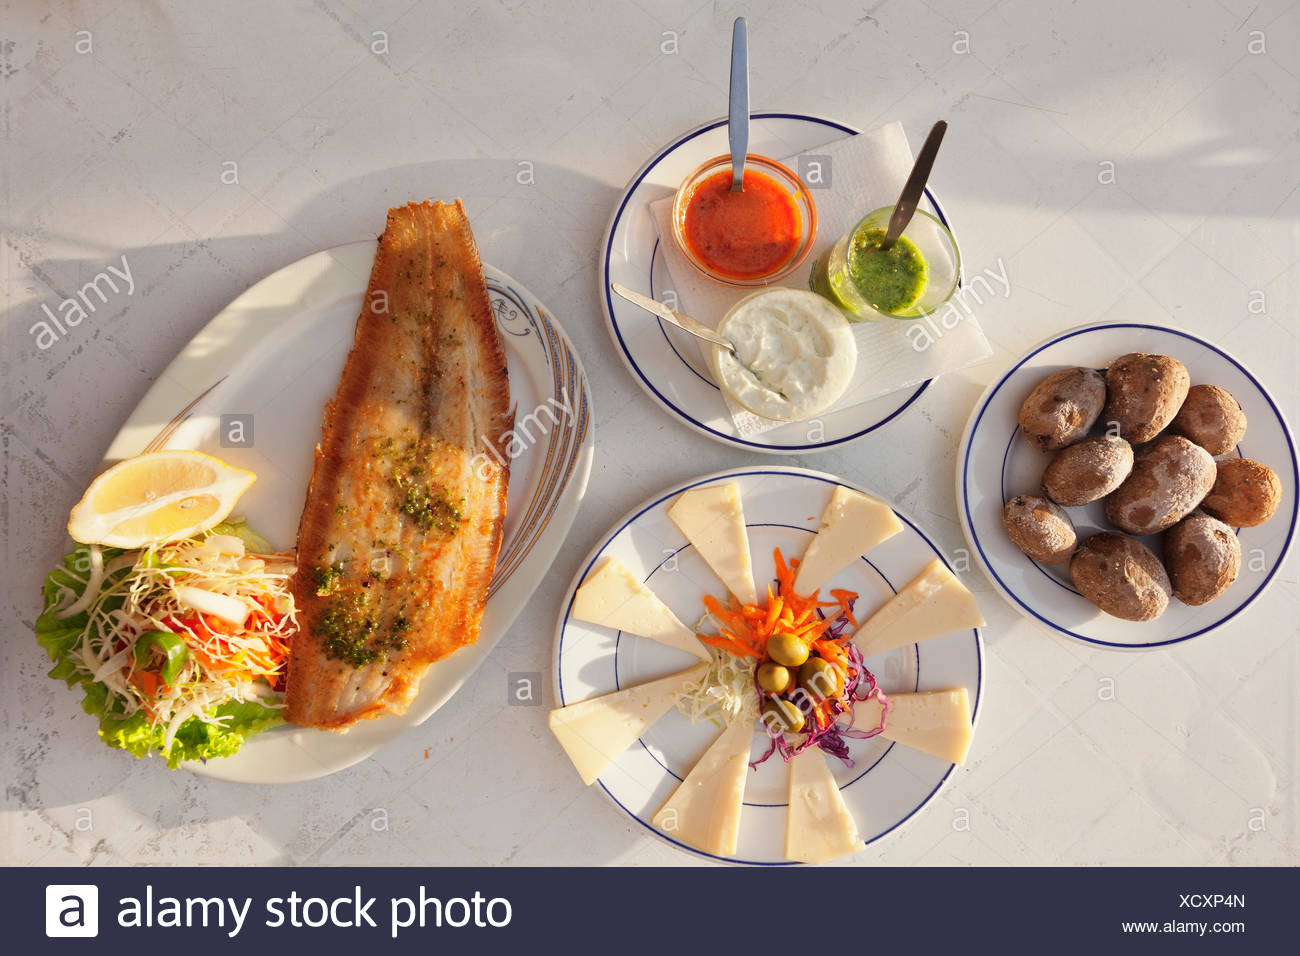 Papas arrugadas con mojo, wrinkled potatoes with mojo sauce, fried fish and cheese platter with Canarian cheese, La Gomera - Stock Image